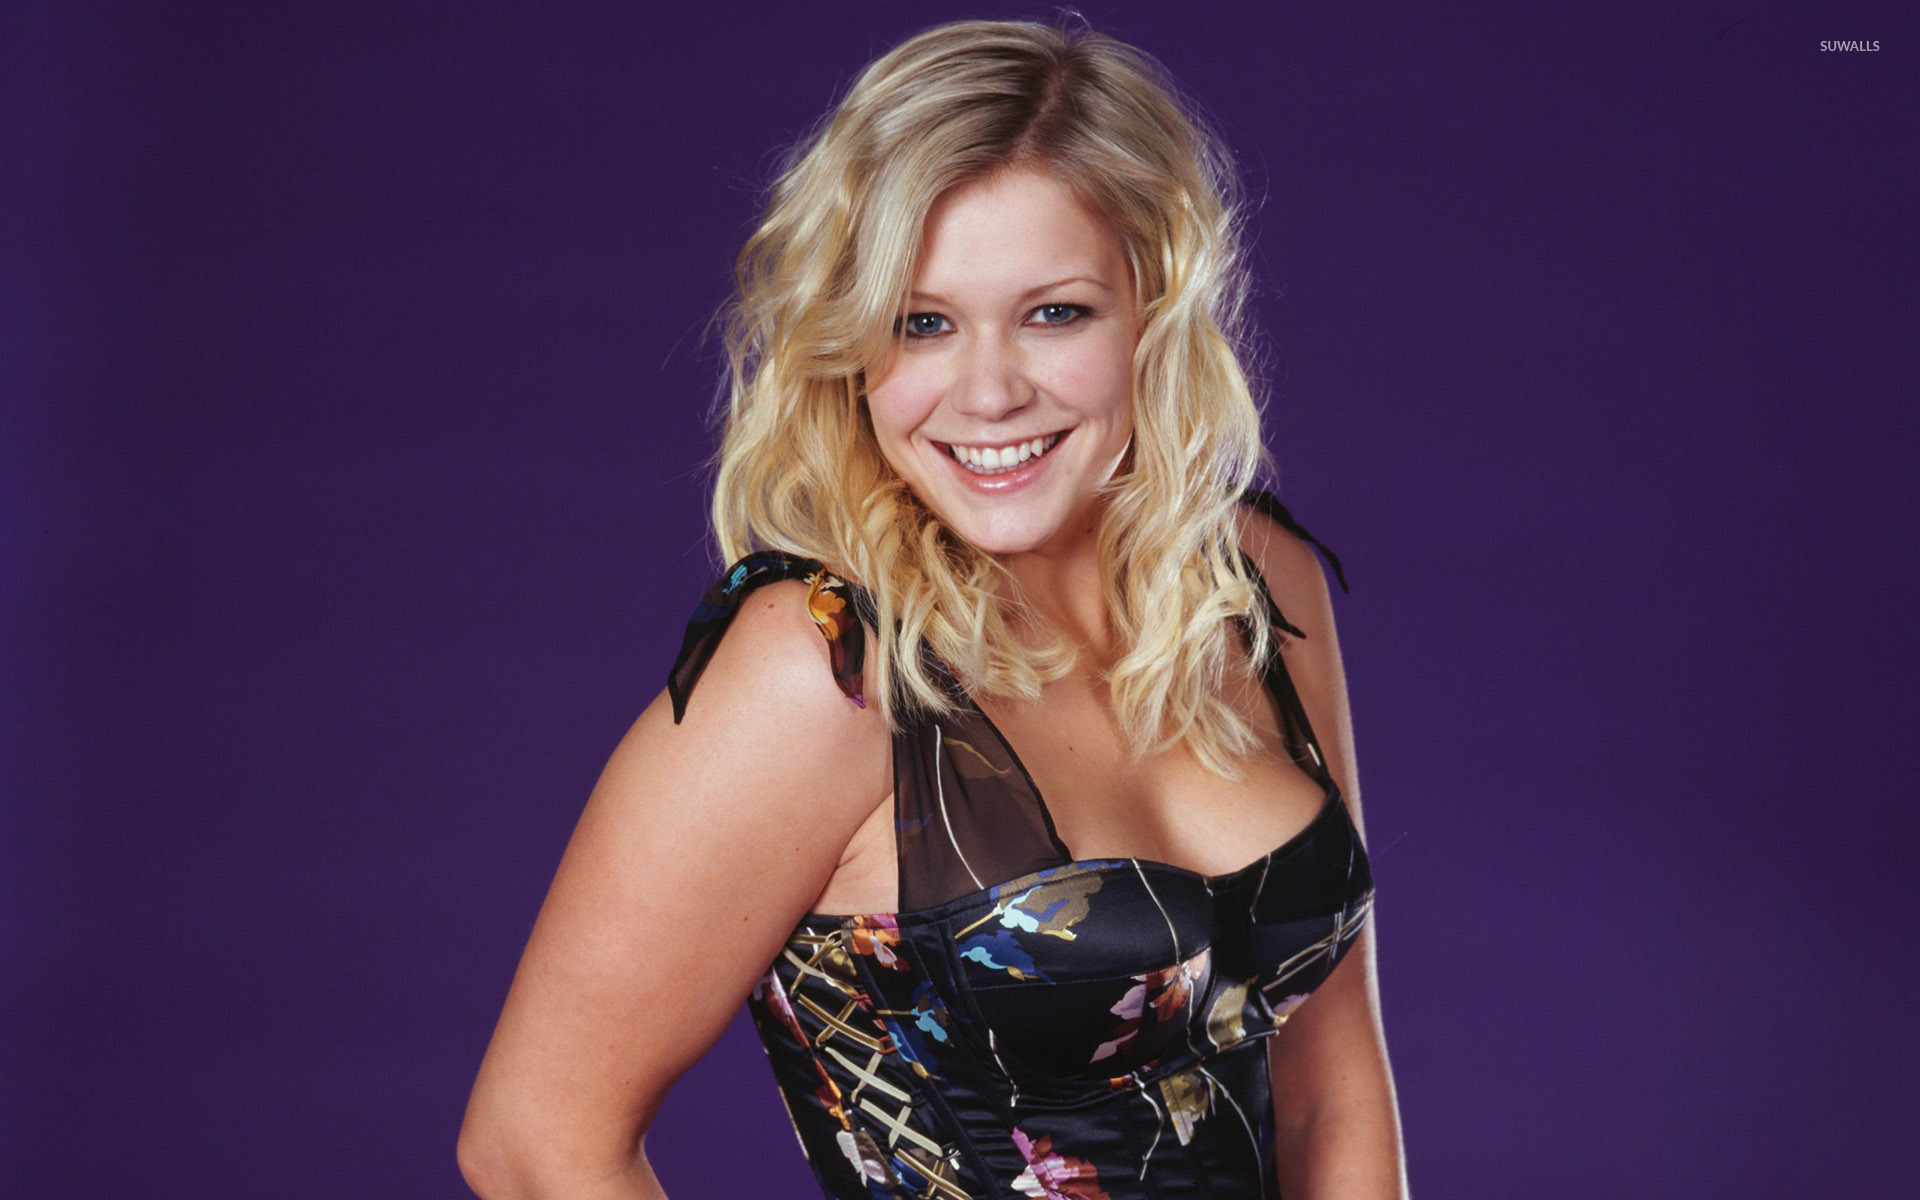 Dancing On Ice Star Suzanne Shaw Gives Birth To Second